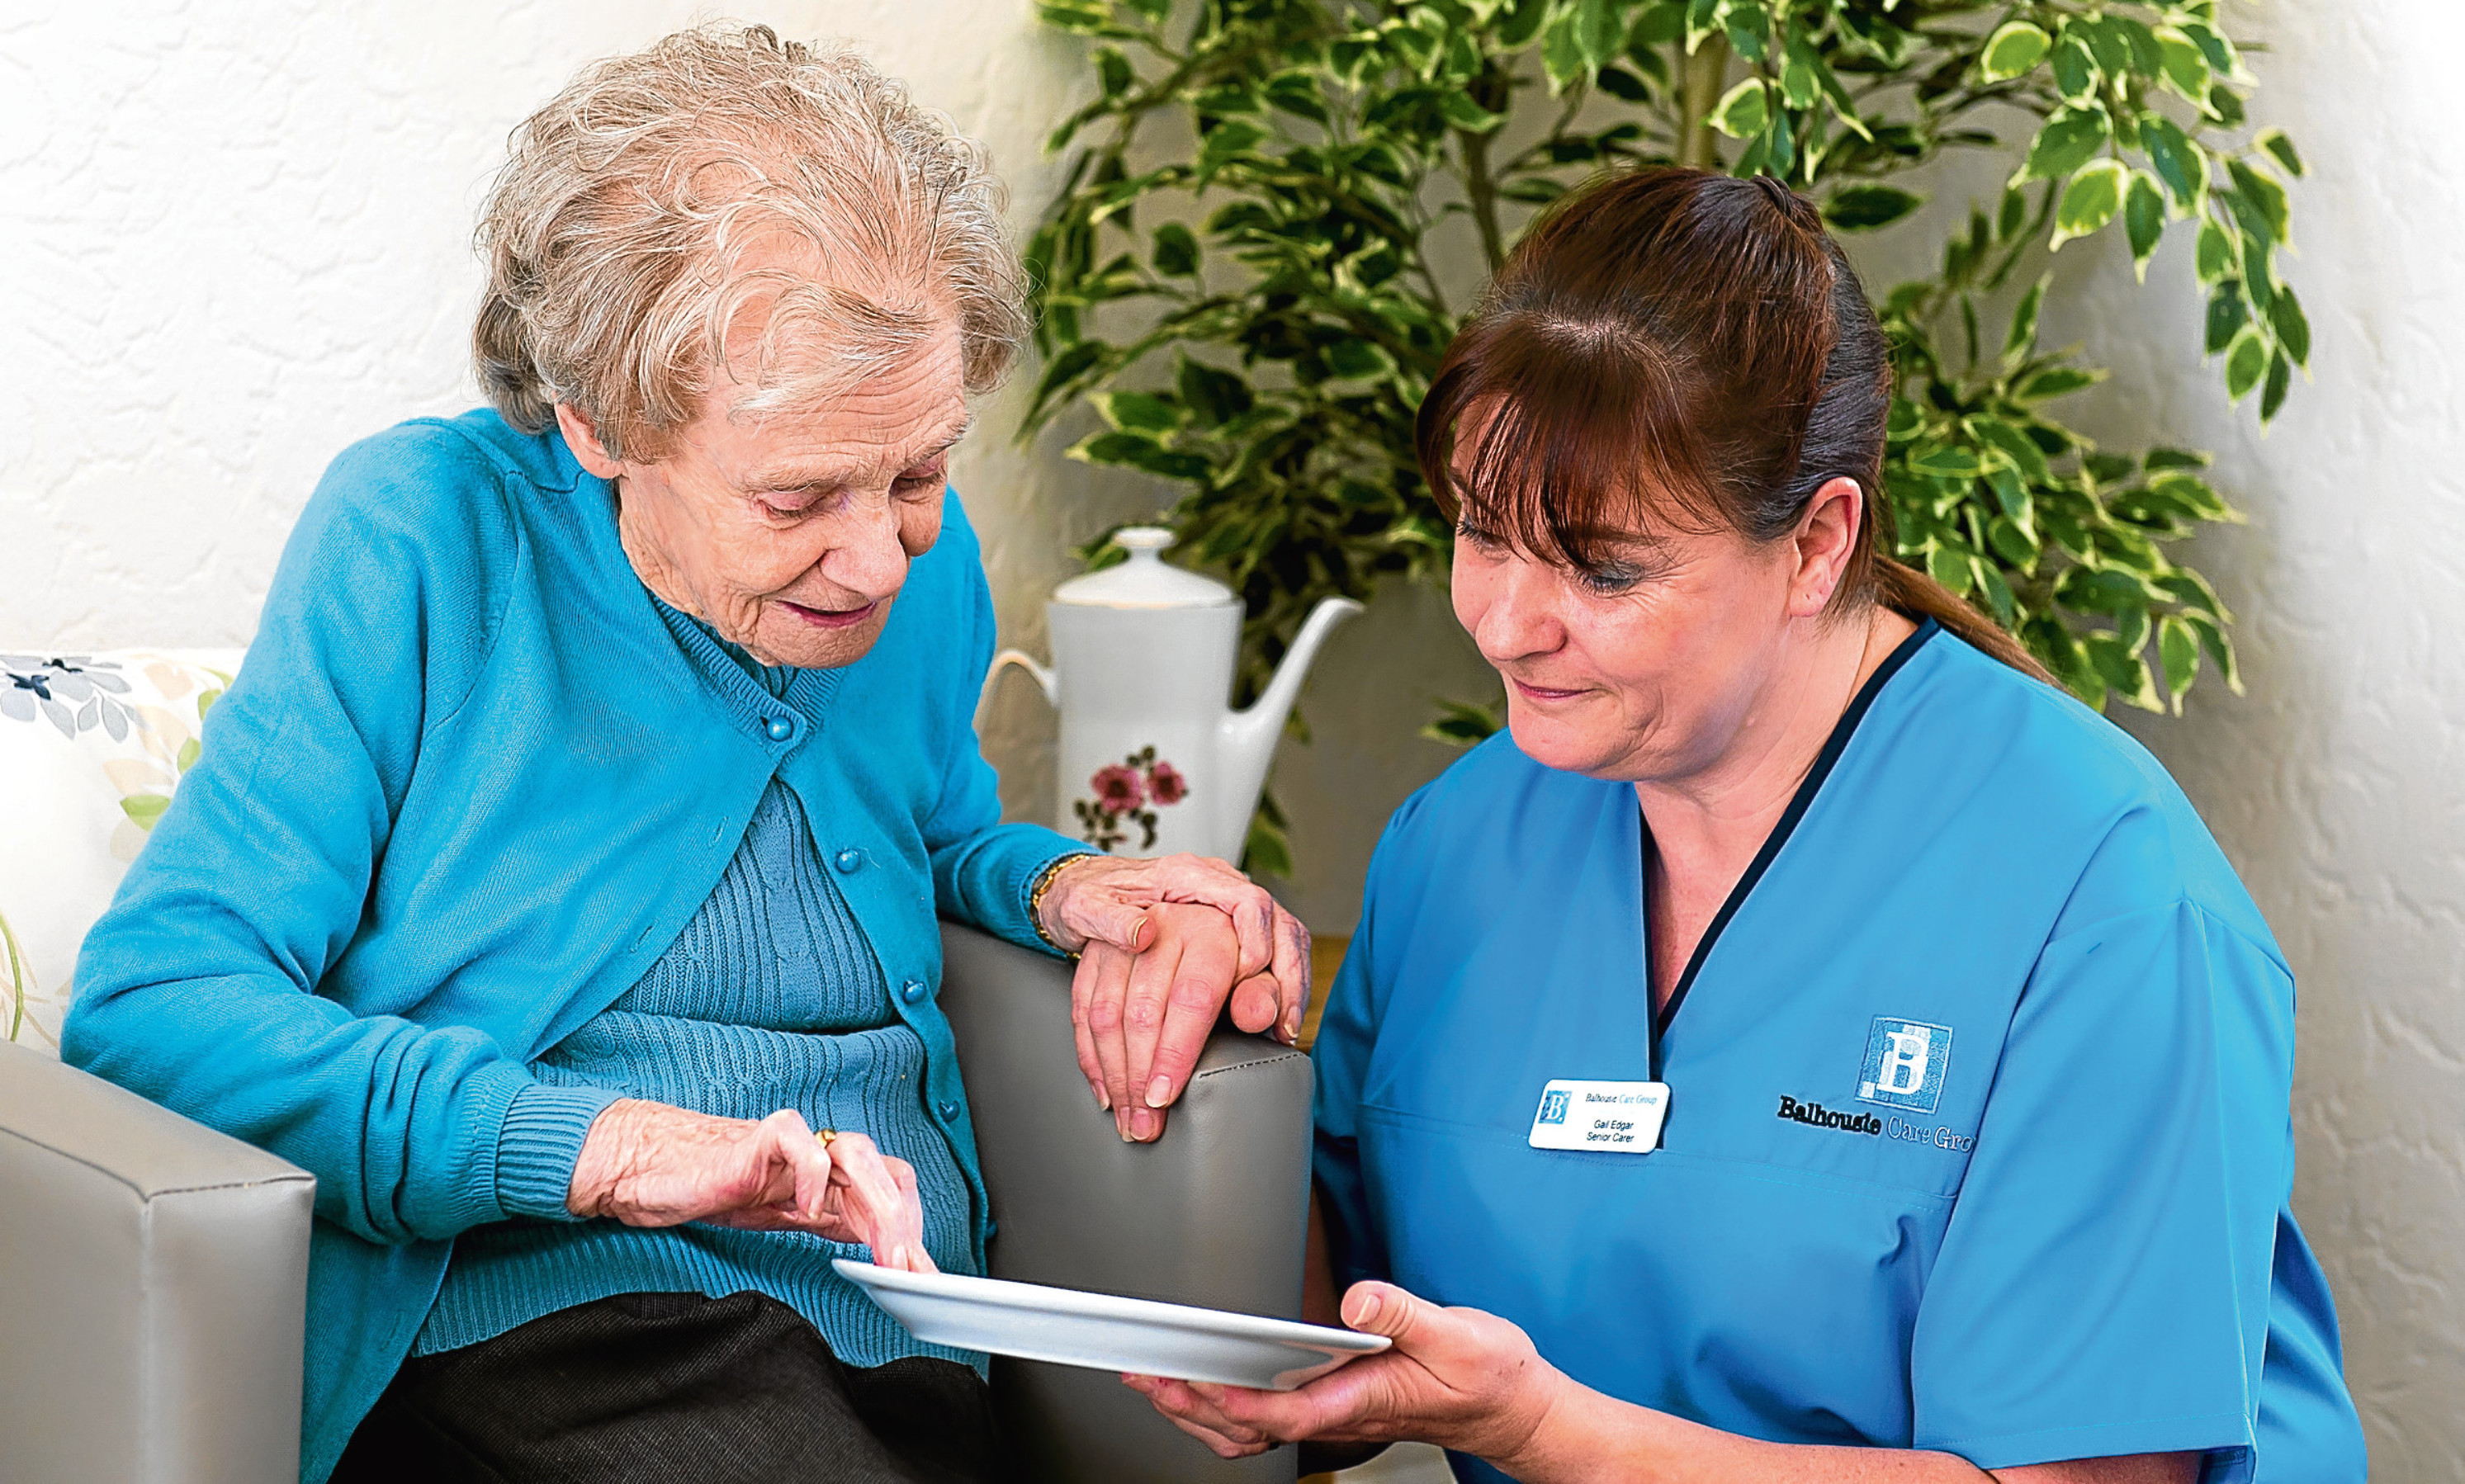 Balhousie Care Group look after around 900 residents across its 25 care home estate